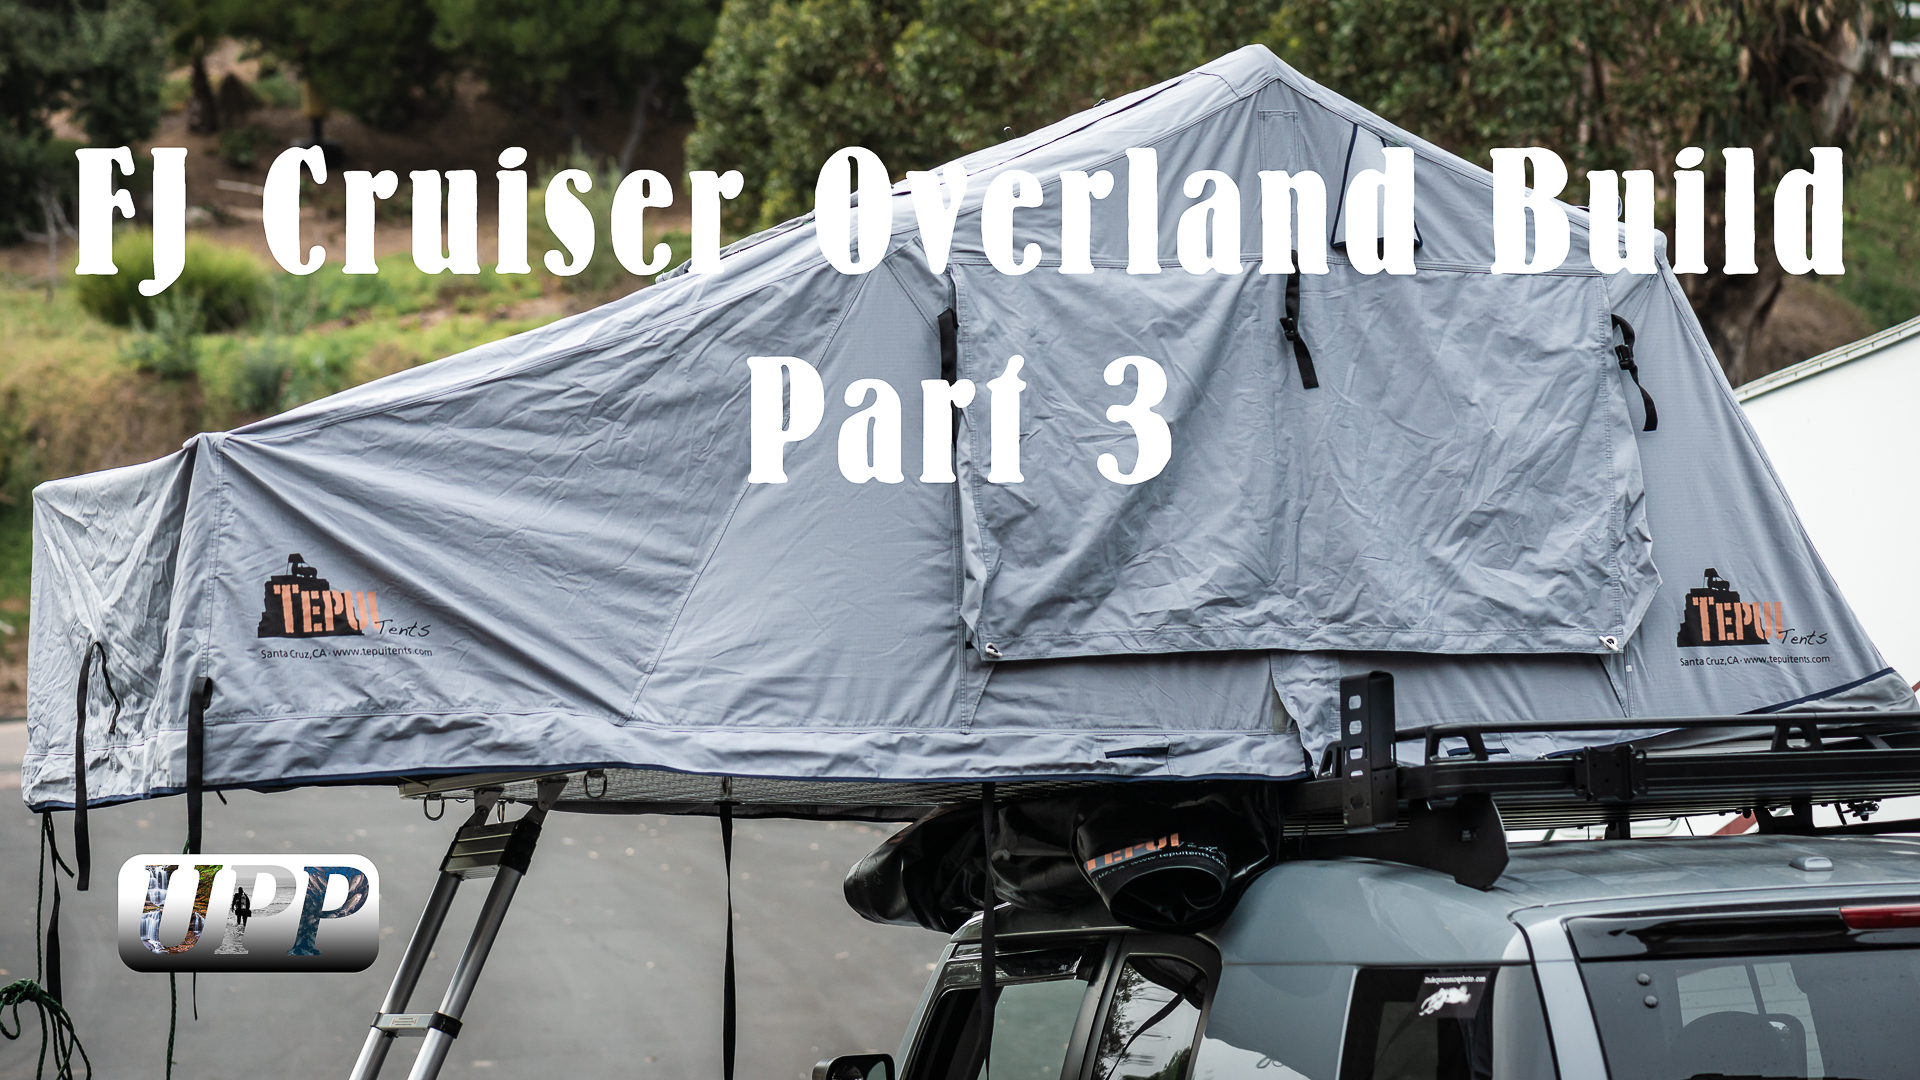 FJ Cruiser Overland Build Part 3 – Roof Top Tent